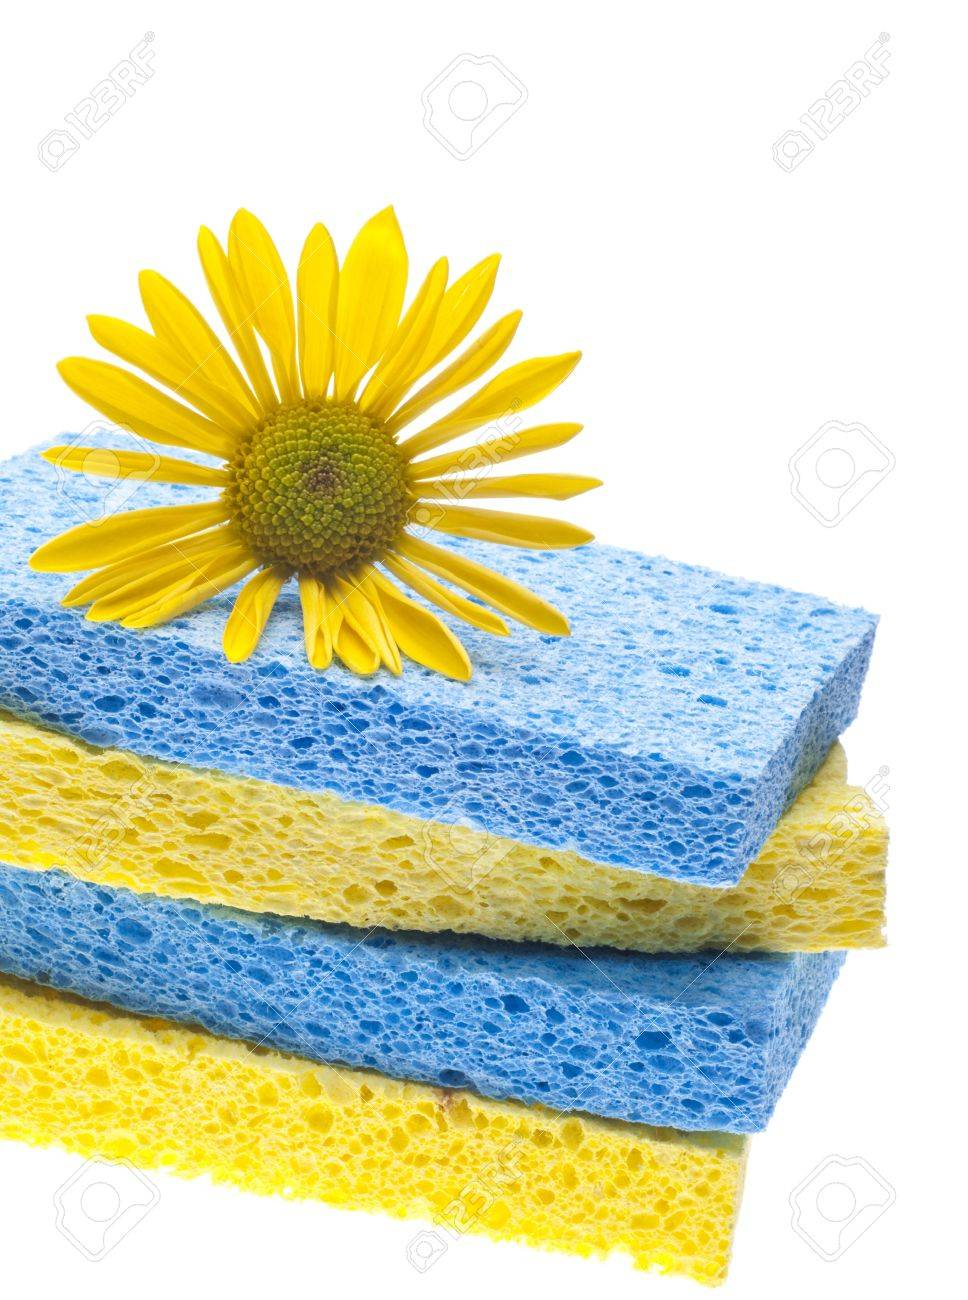 Natural Spring Cleaning Concept with Sponges and Daisy. Stock Photo - 8896287